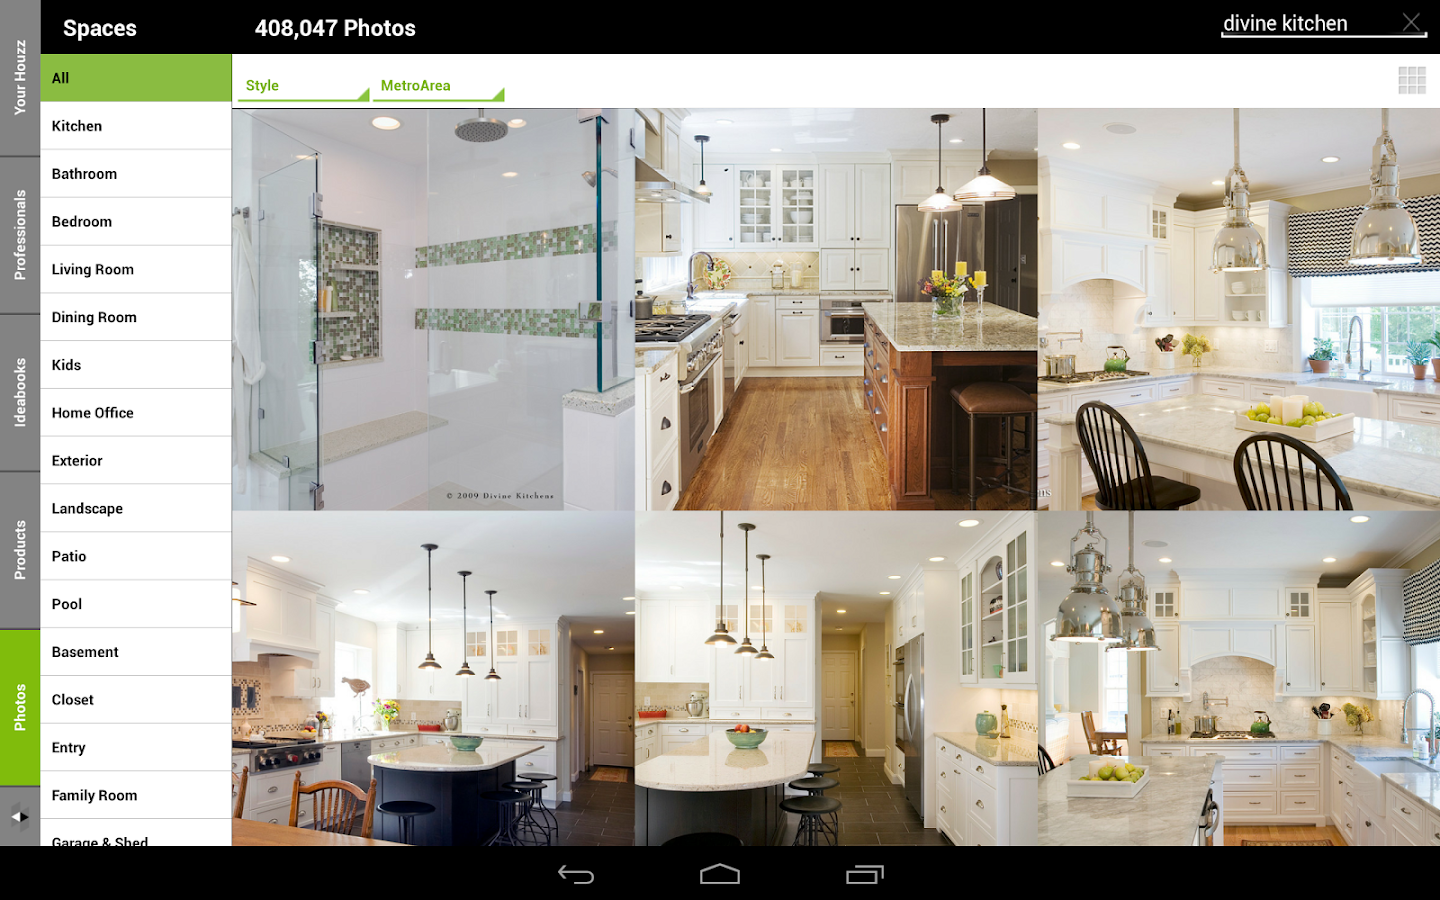 houzz interior design ideas android apps on google play. Black Bedroom Furniture Sets. Home Design Ideas